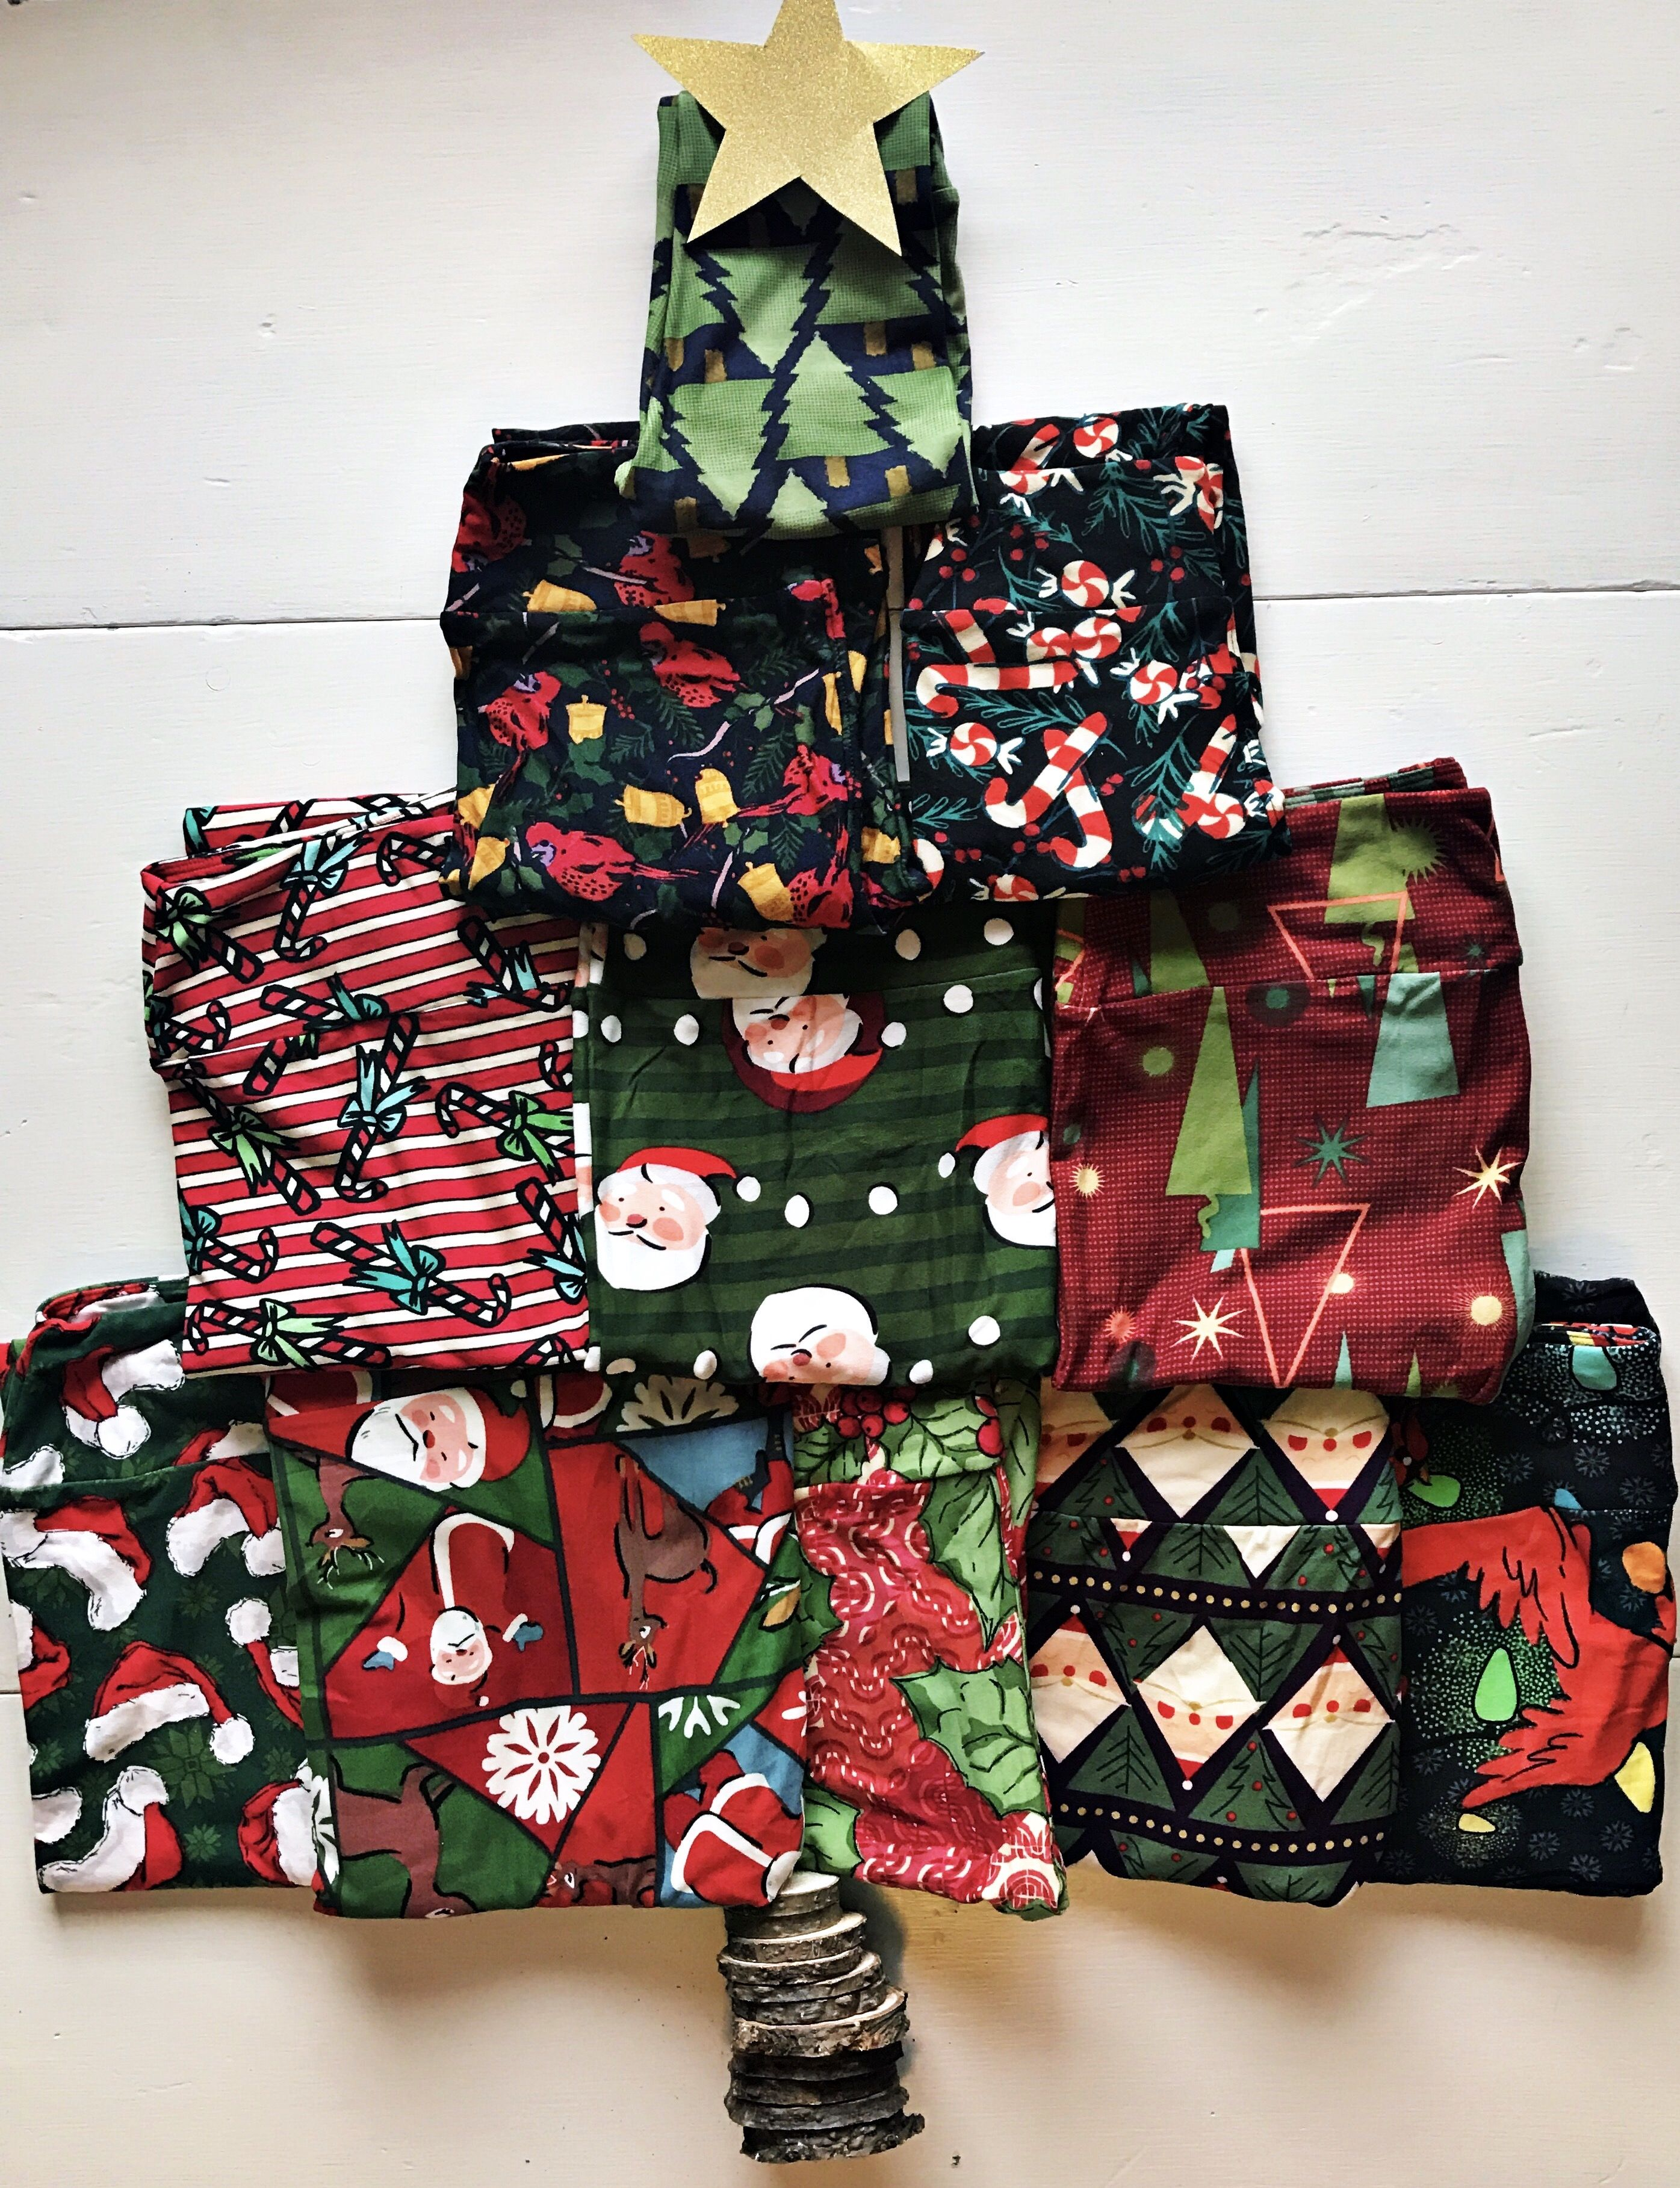 Lularoe Christmas Leggings.The Most Wonderful Time Of The Year Grab A Pair Of Festive